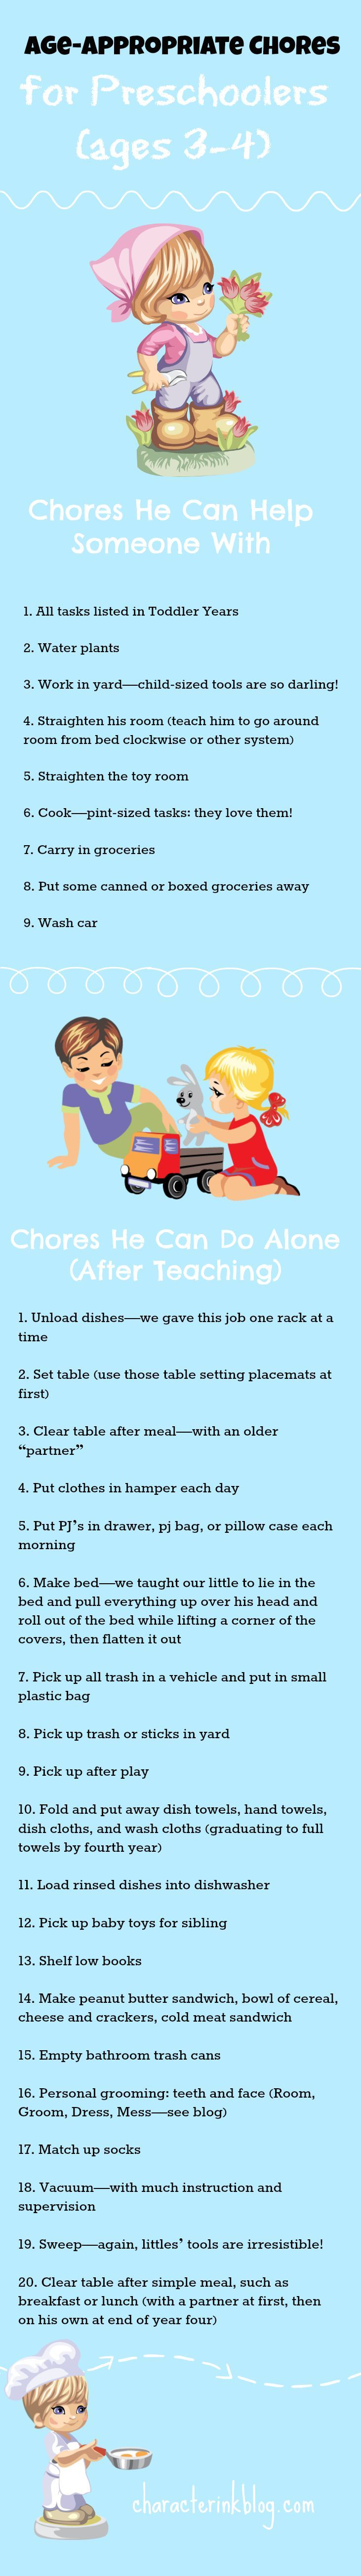 109 best Character Building & Value images on Pinterest | Parenting ...